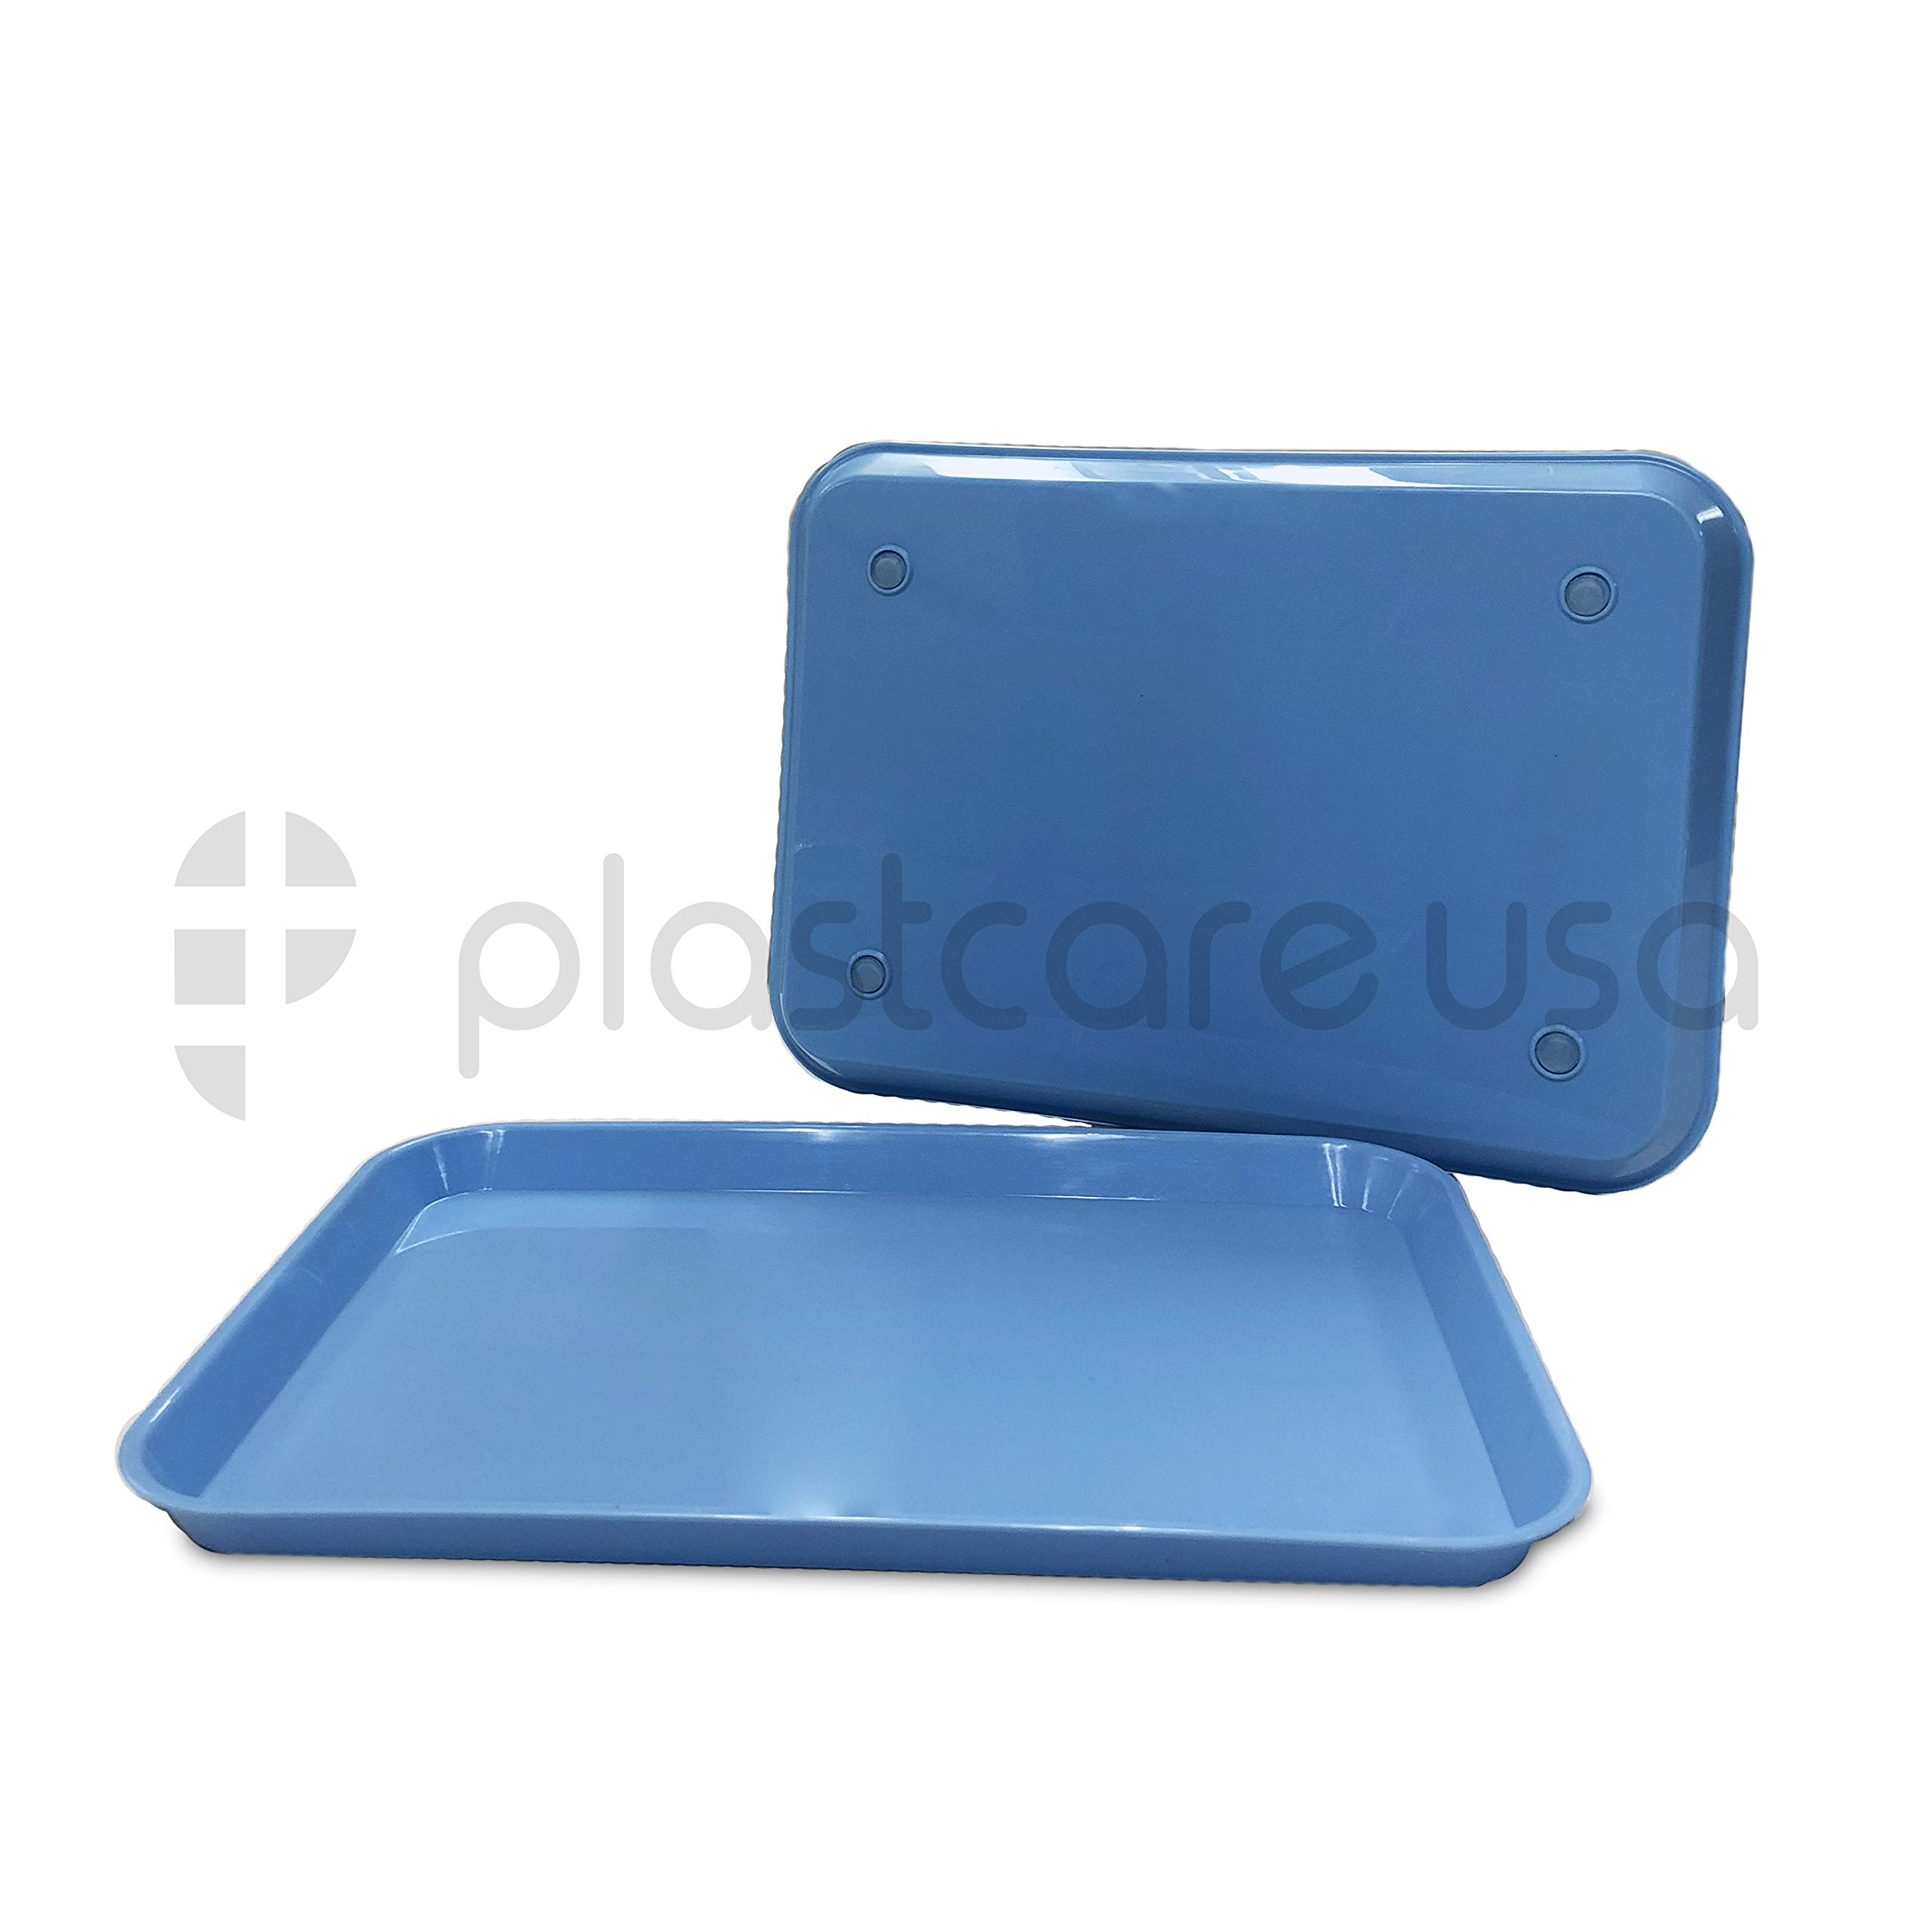 12 Dental Autoclavable Plastic Instrument Set Up Flat Trays, Blue, 13.25 Inches x 9.75 Inches, Size B